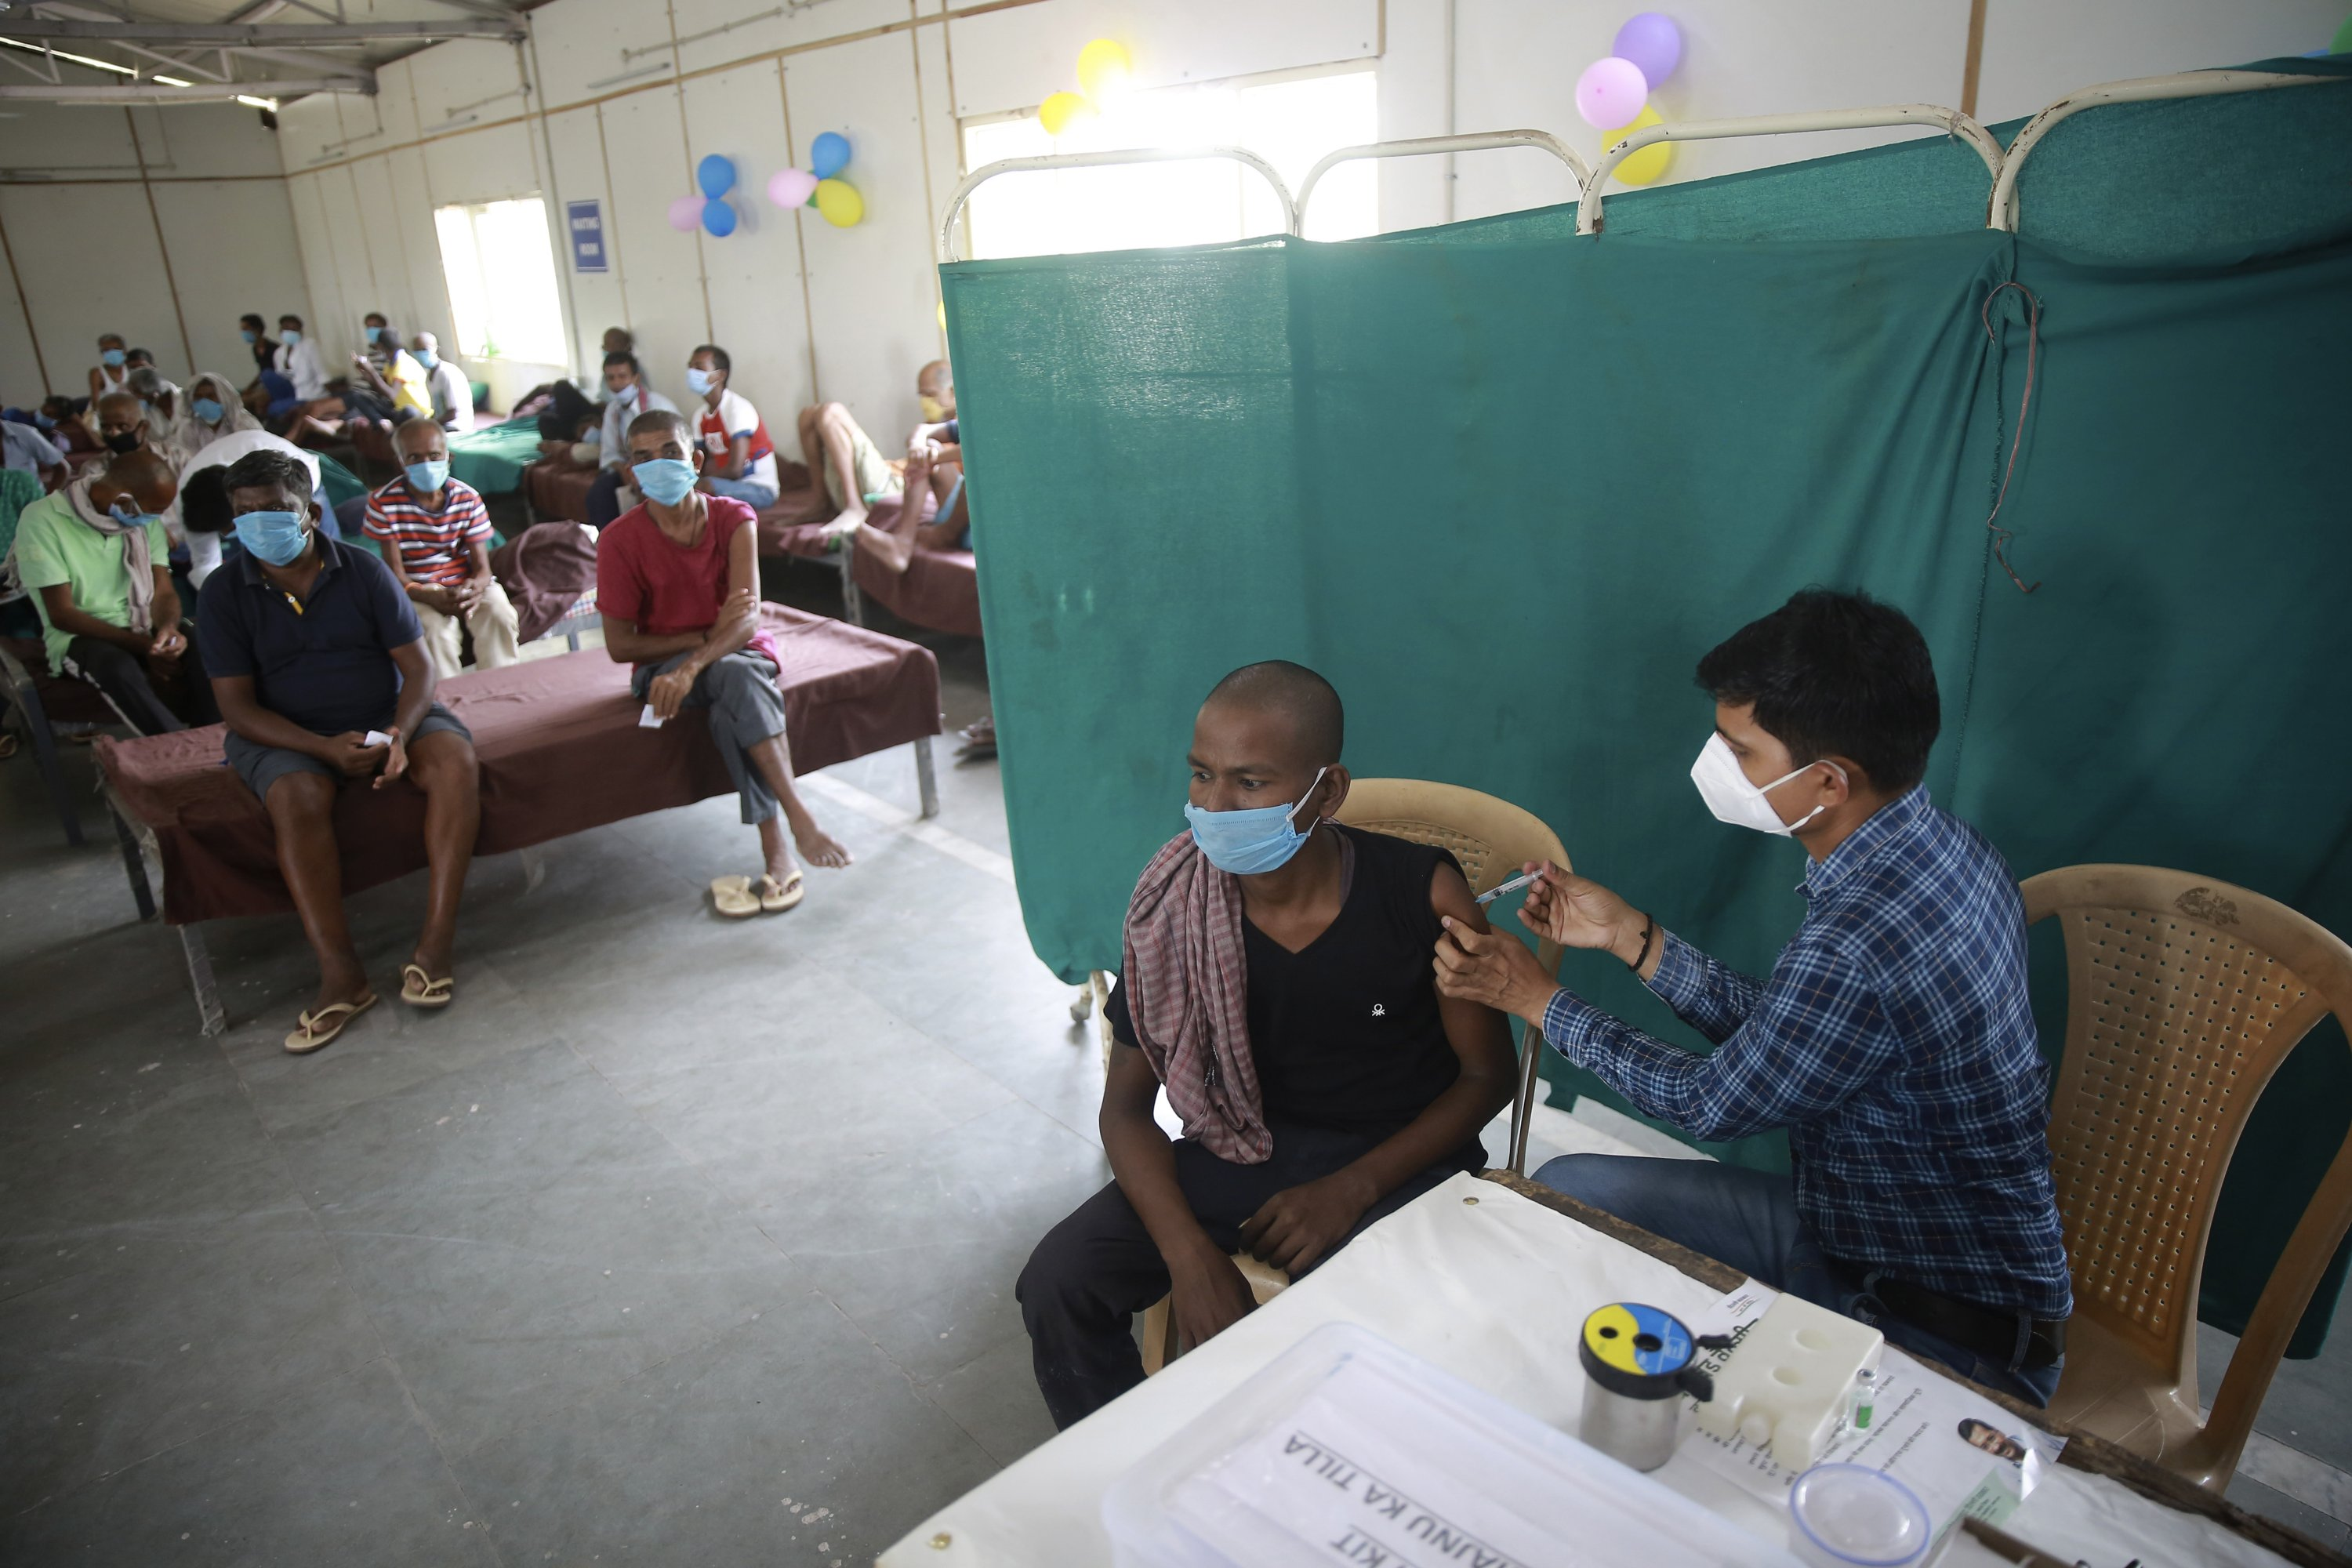 A health worker administers a COVID-19 vaccine during a vaccination drive aimed at the homeless in New Delhi, India, June 25, 2021. (AP Photo)